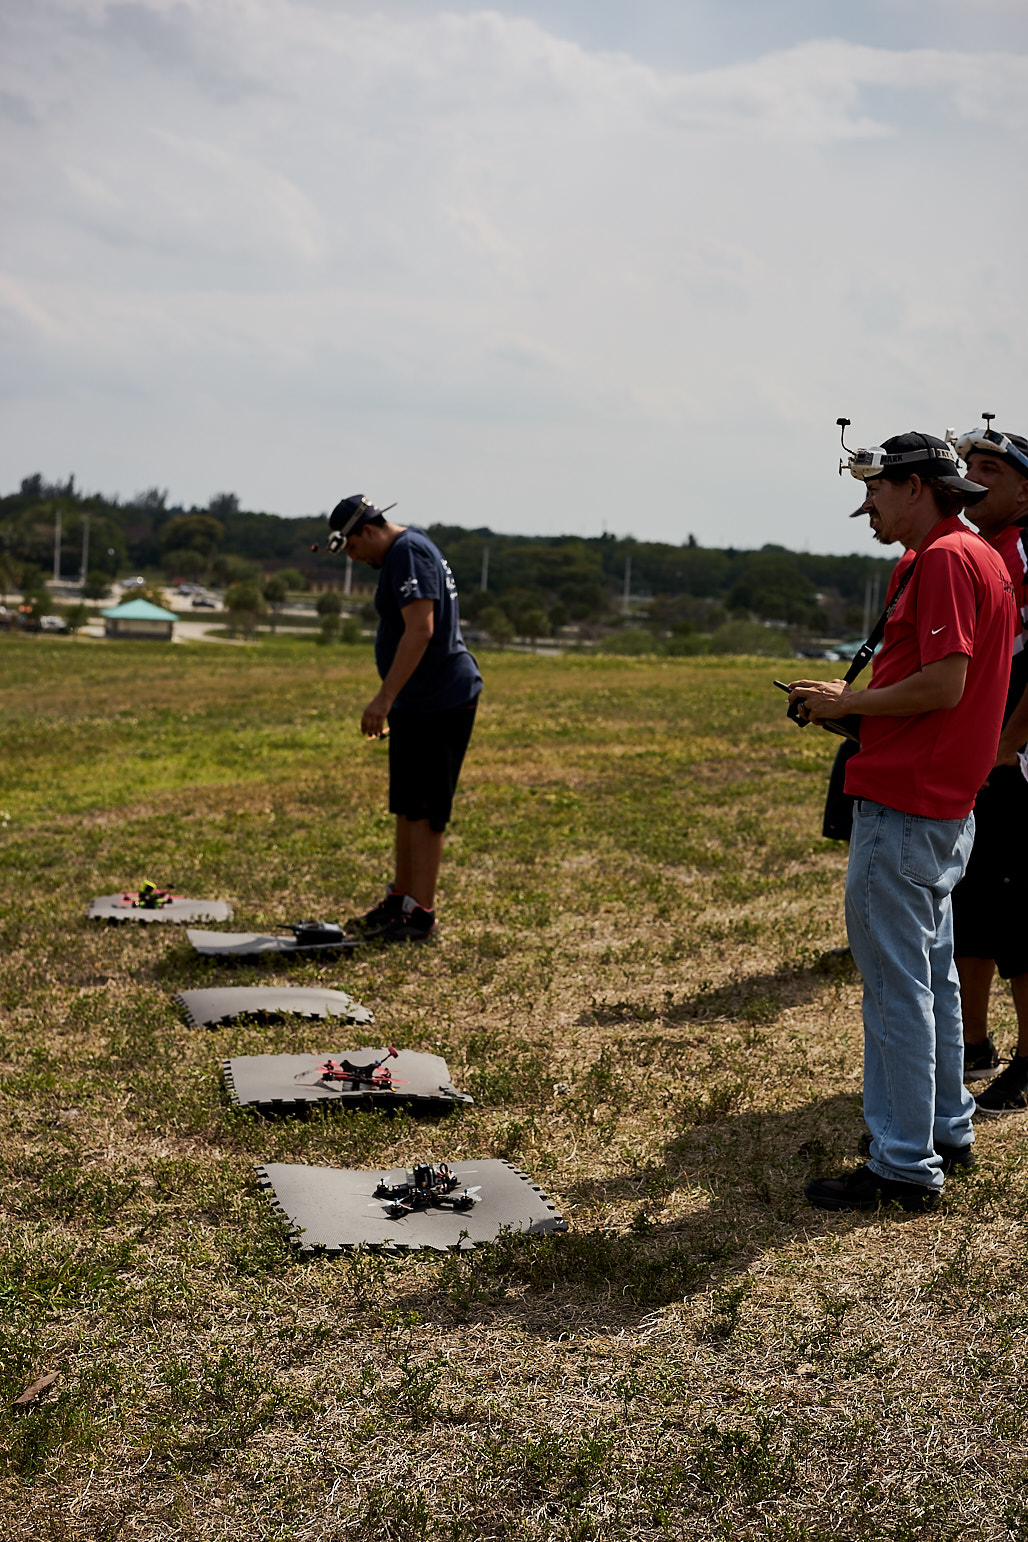 broward_fpv_drone_racing_qualifiers_davie_florida_jose_romero_wordintown_april_2017_ DSC09110